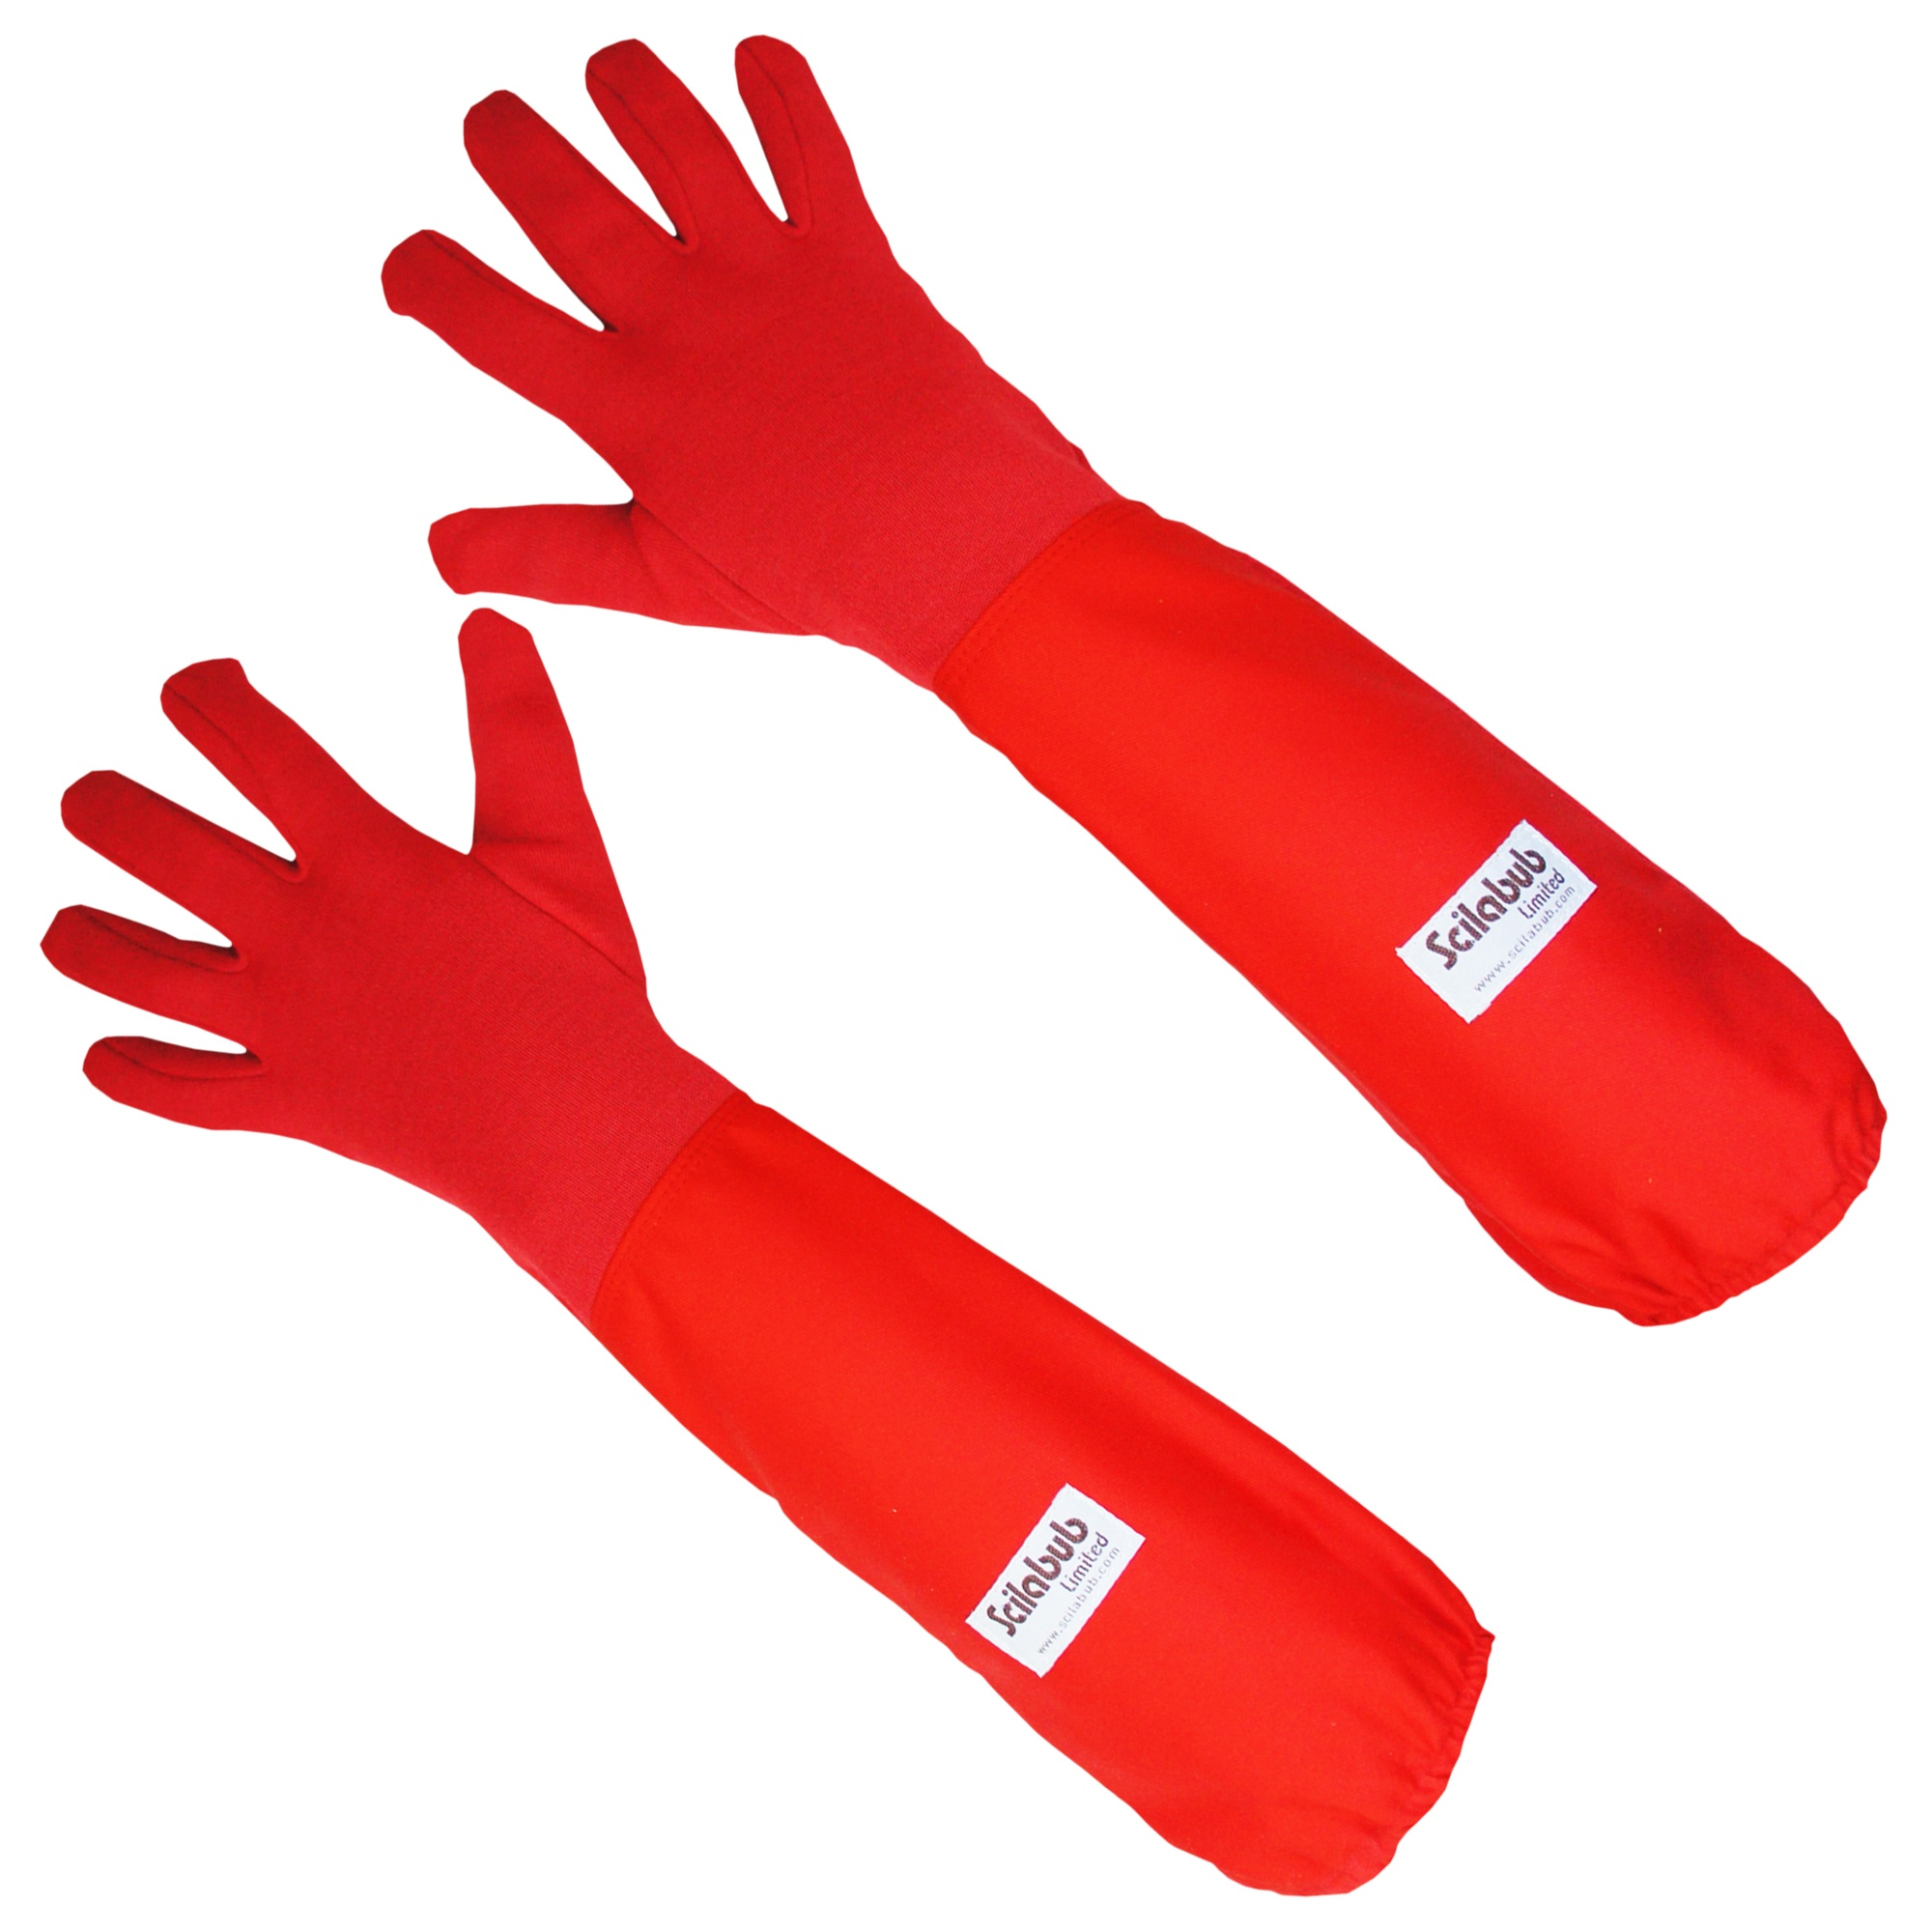 Protective gloves made of Nomex® Image